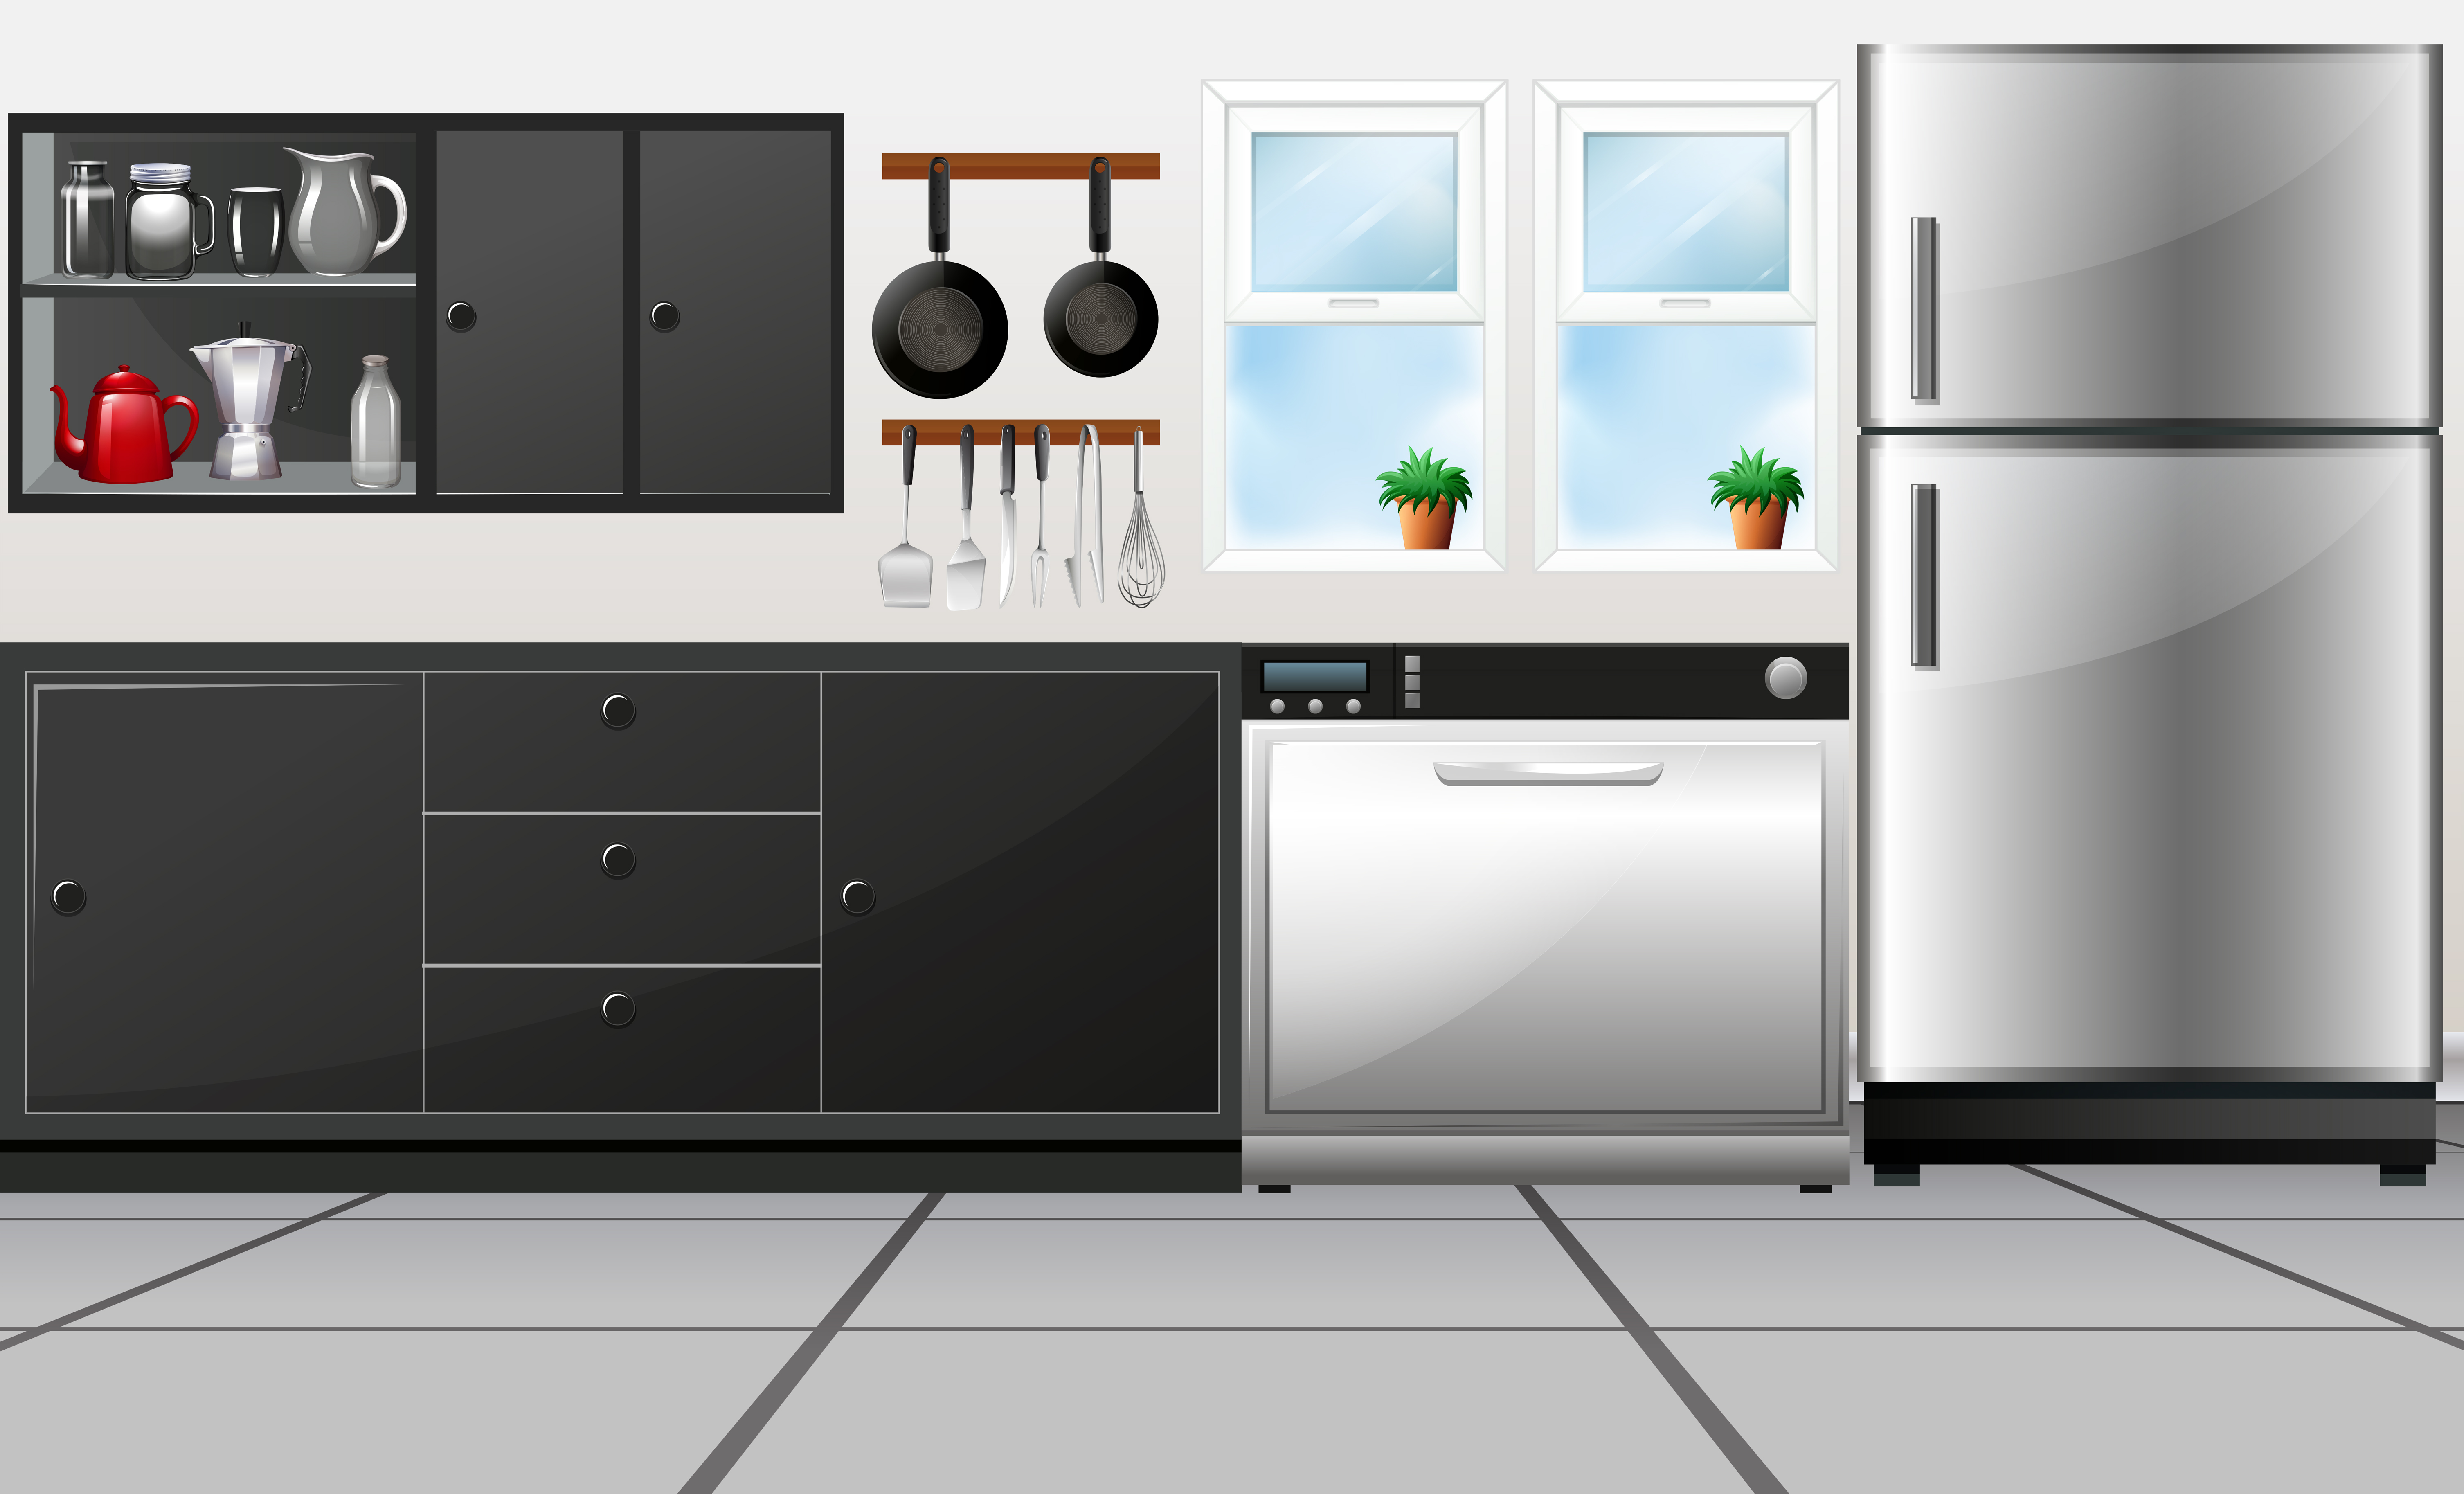 Kitchen Room With Utensils And Electronic Appliances